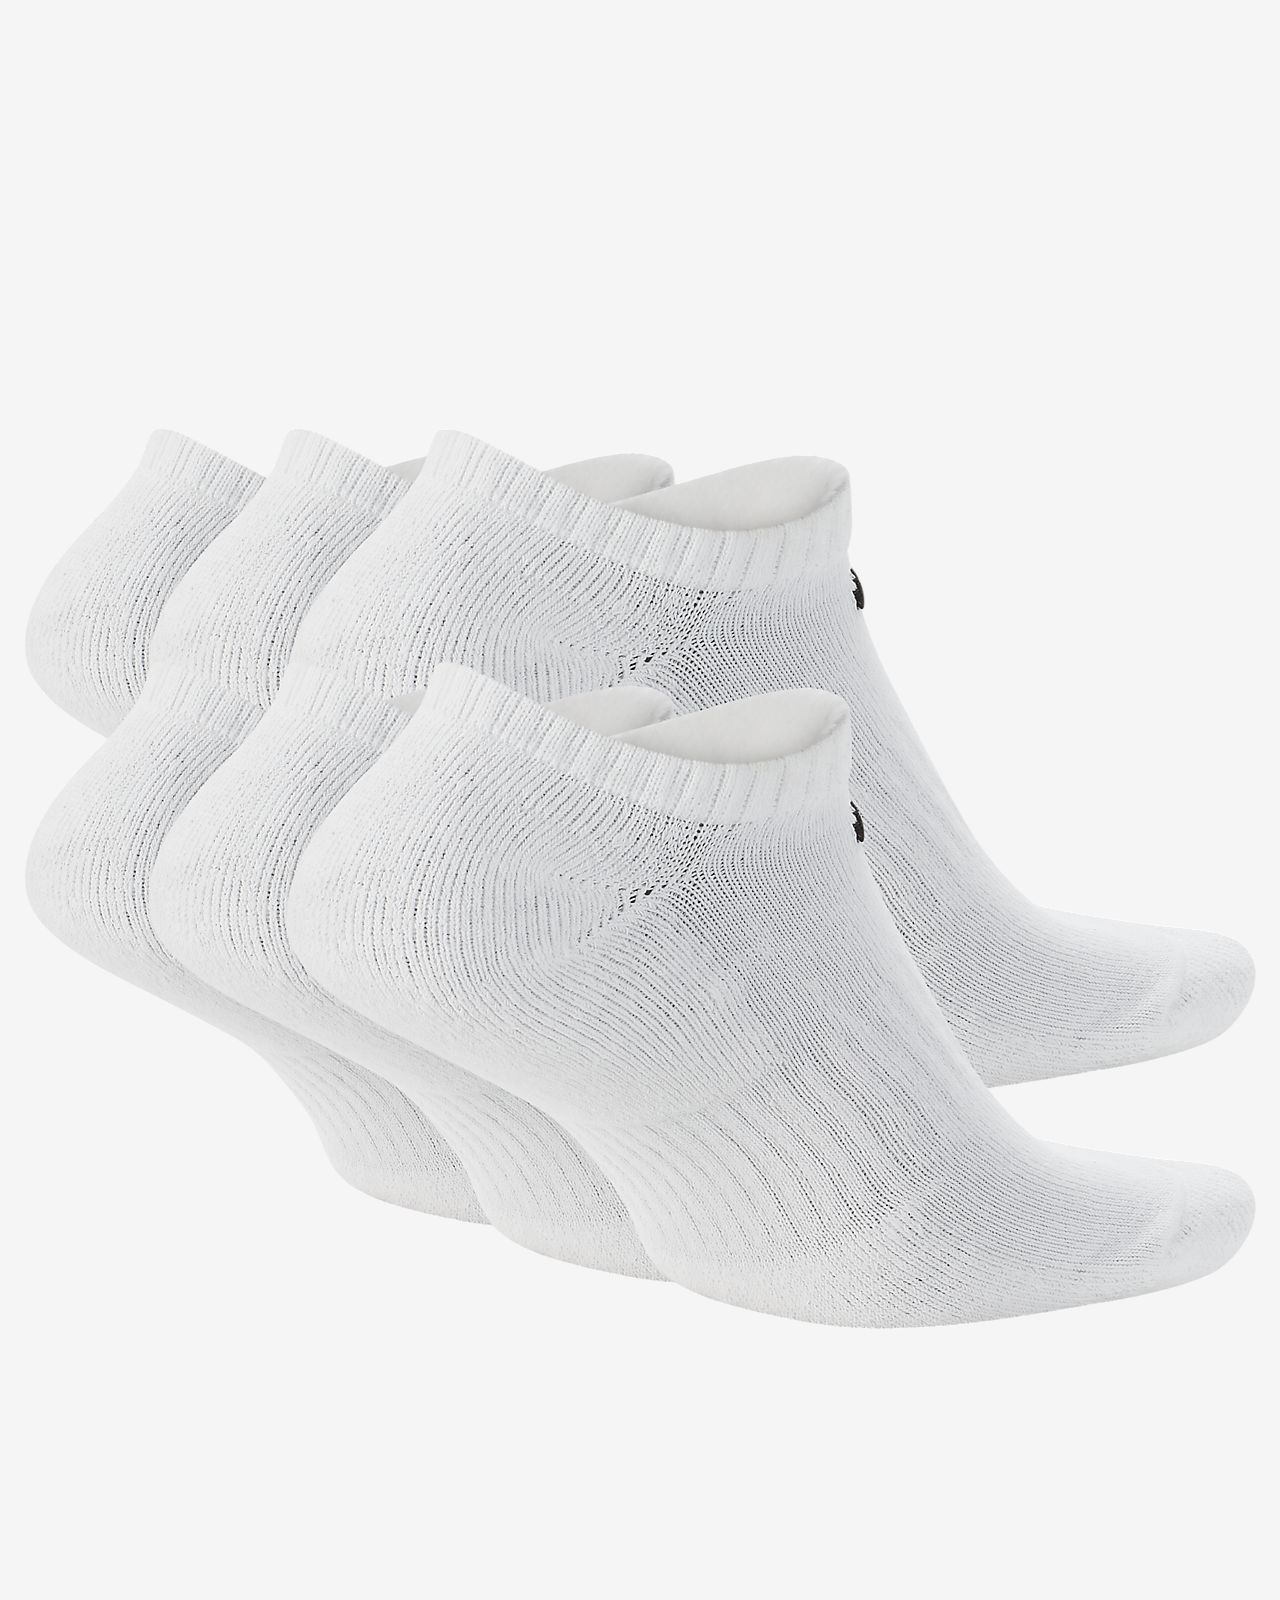 quality design eb9bf c0425 ... Nike Everyday Cushion No-Show Training Socks (6 Pair)